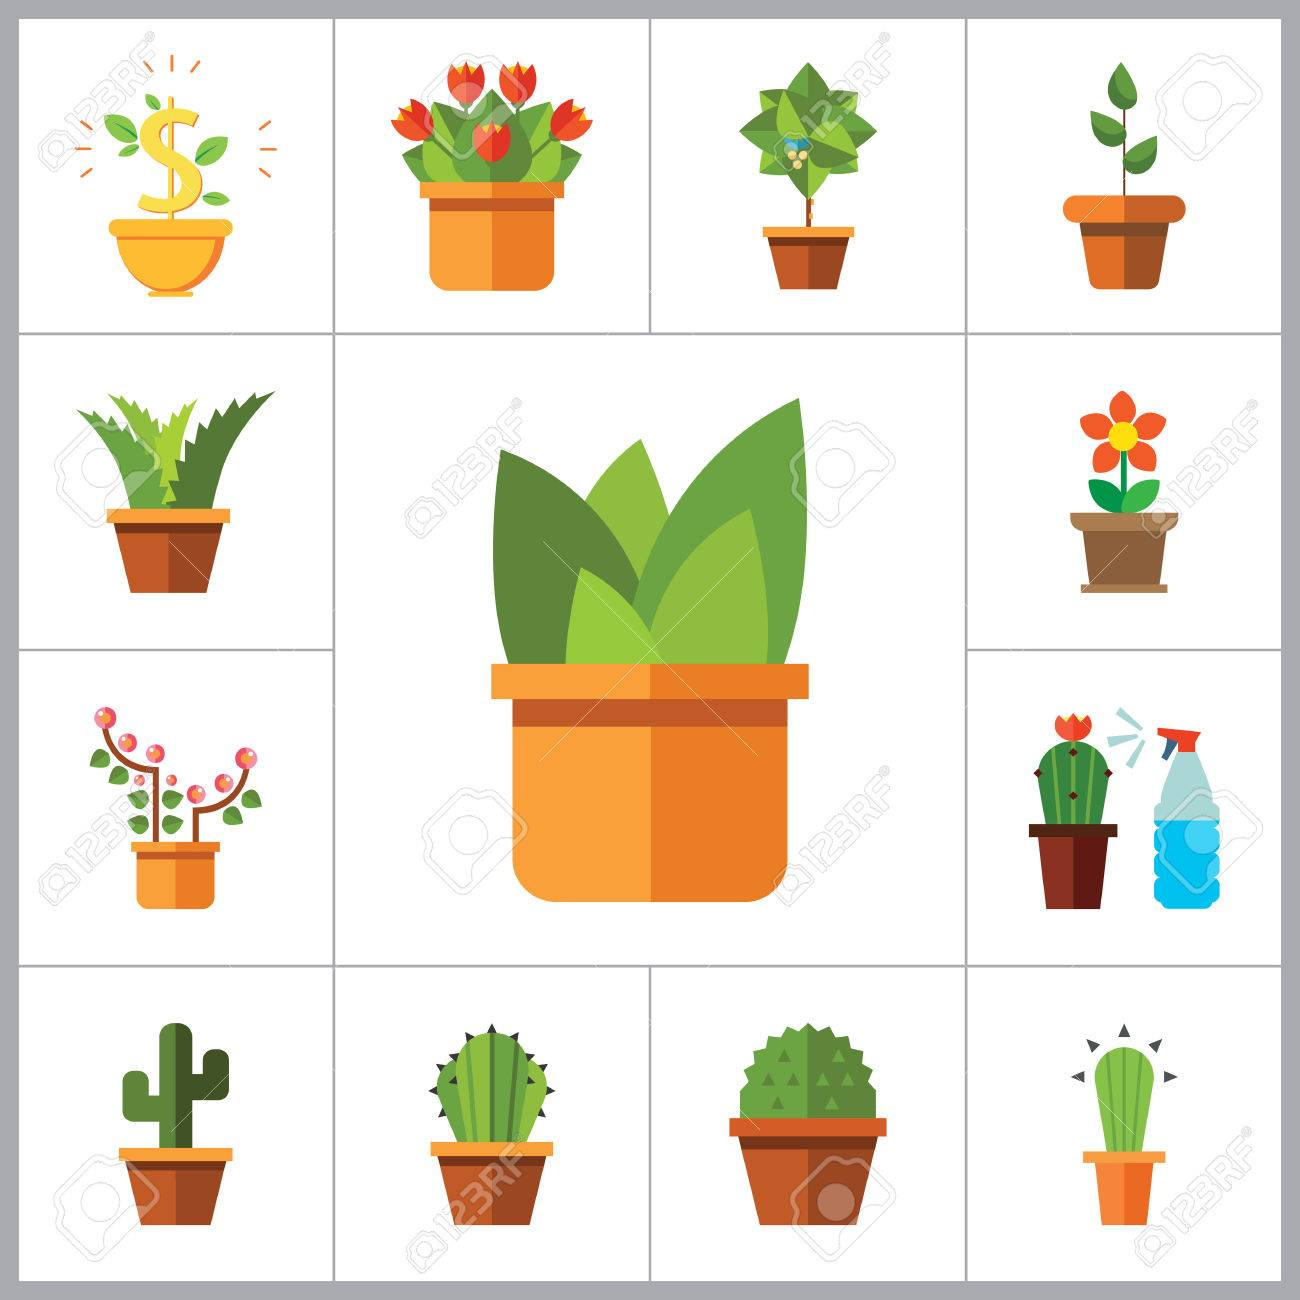 Potted Flowers Icon Set. Money Tree Cactus In Pot Cactus And Spray Bottle Plant Blooming  sc 1 st  123RF.com & Potted Flowers Icon Set. Money Tree Cactus In Pot Cactus And ...